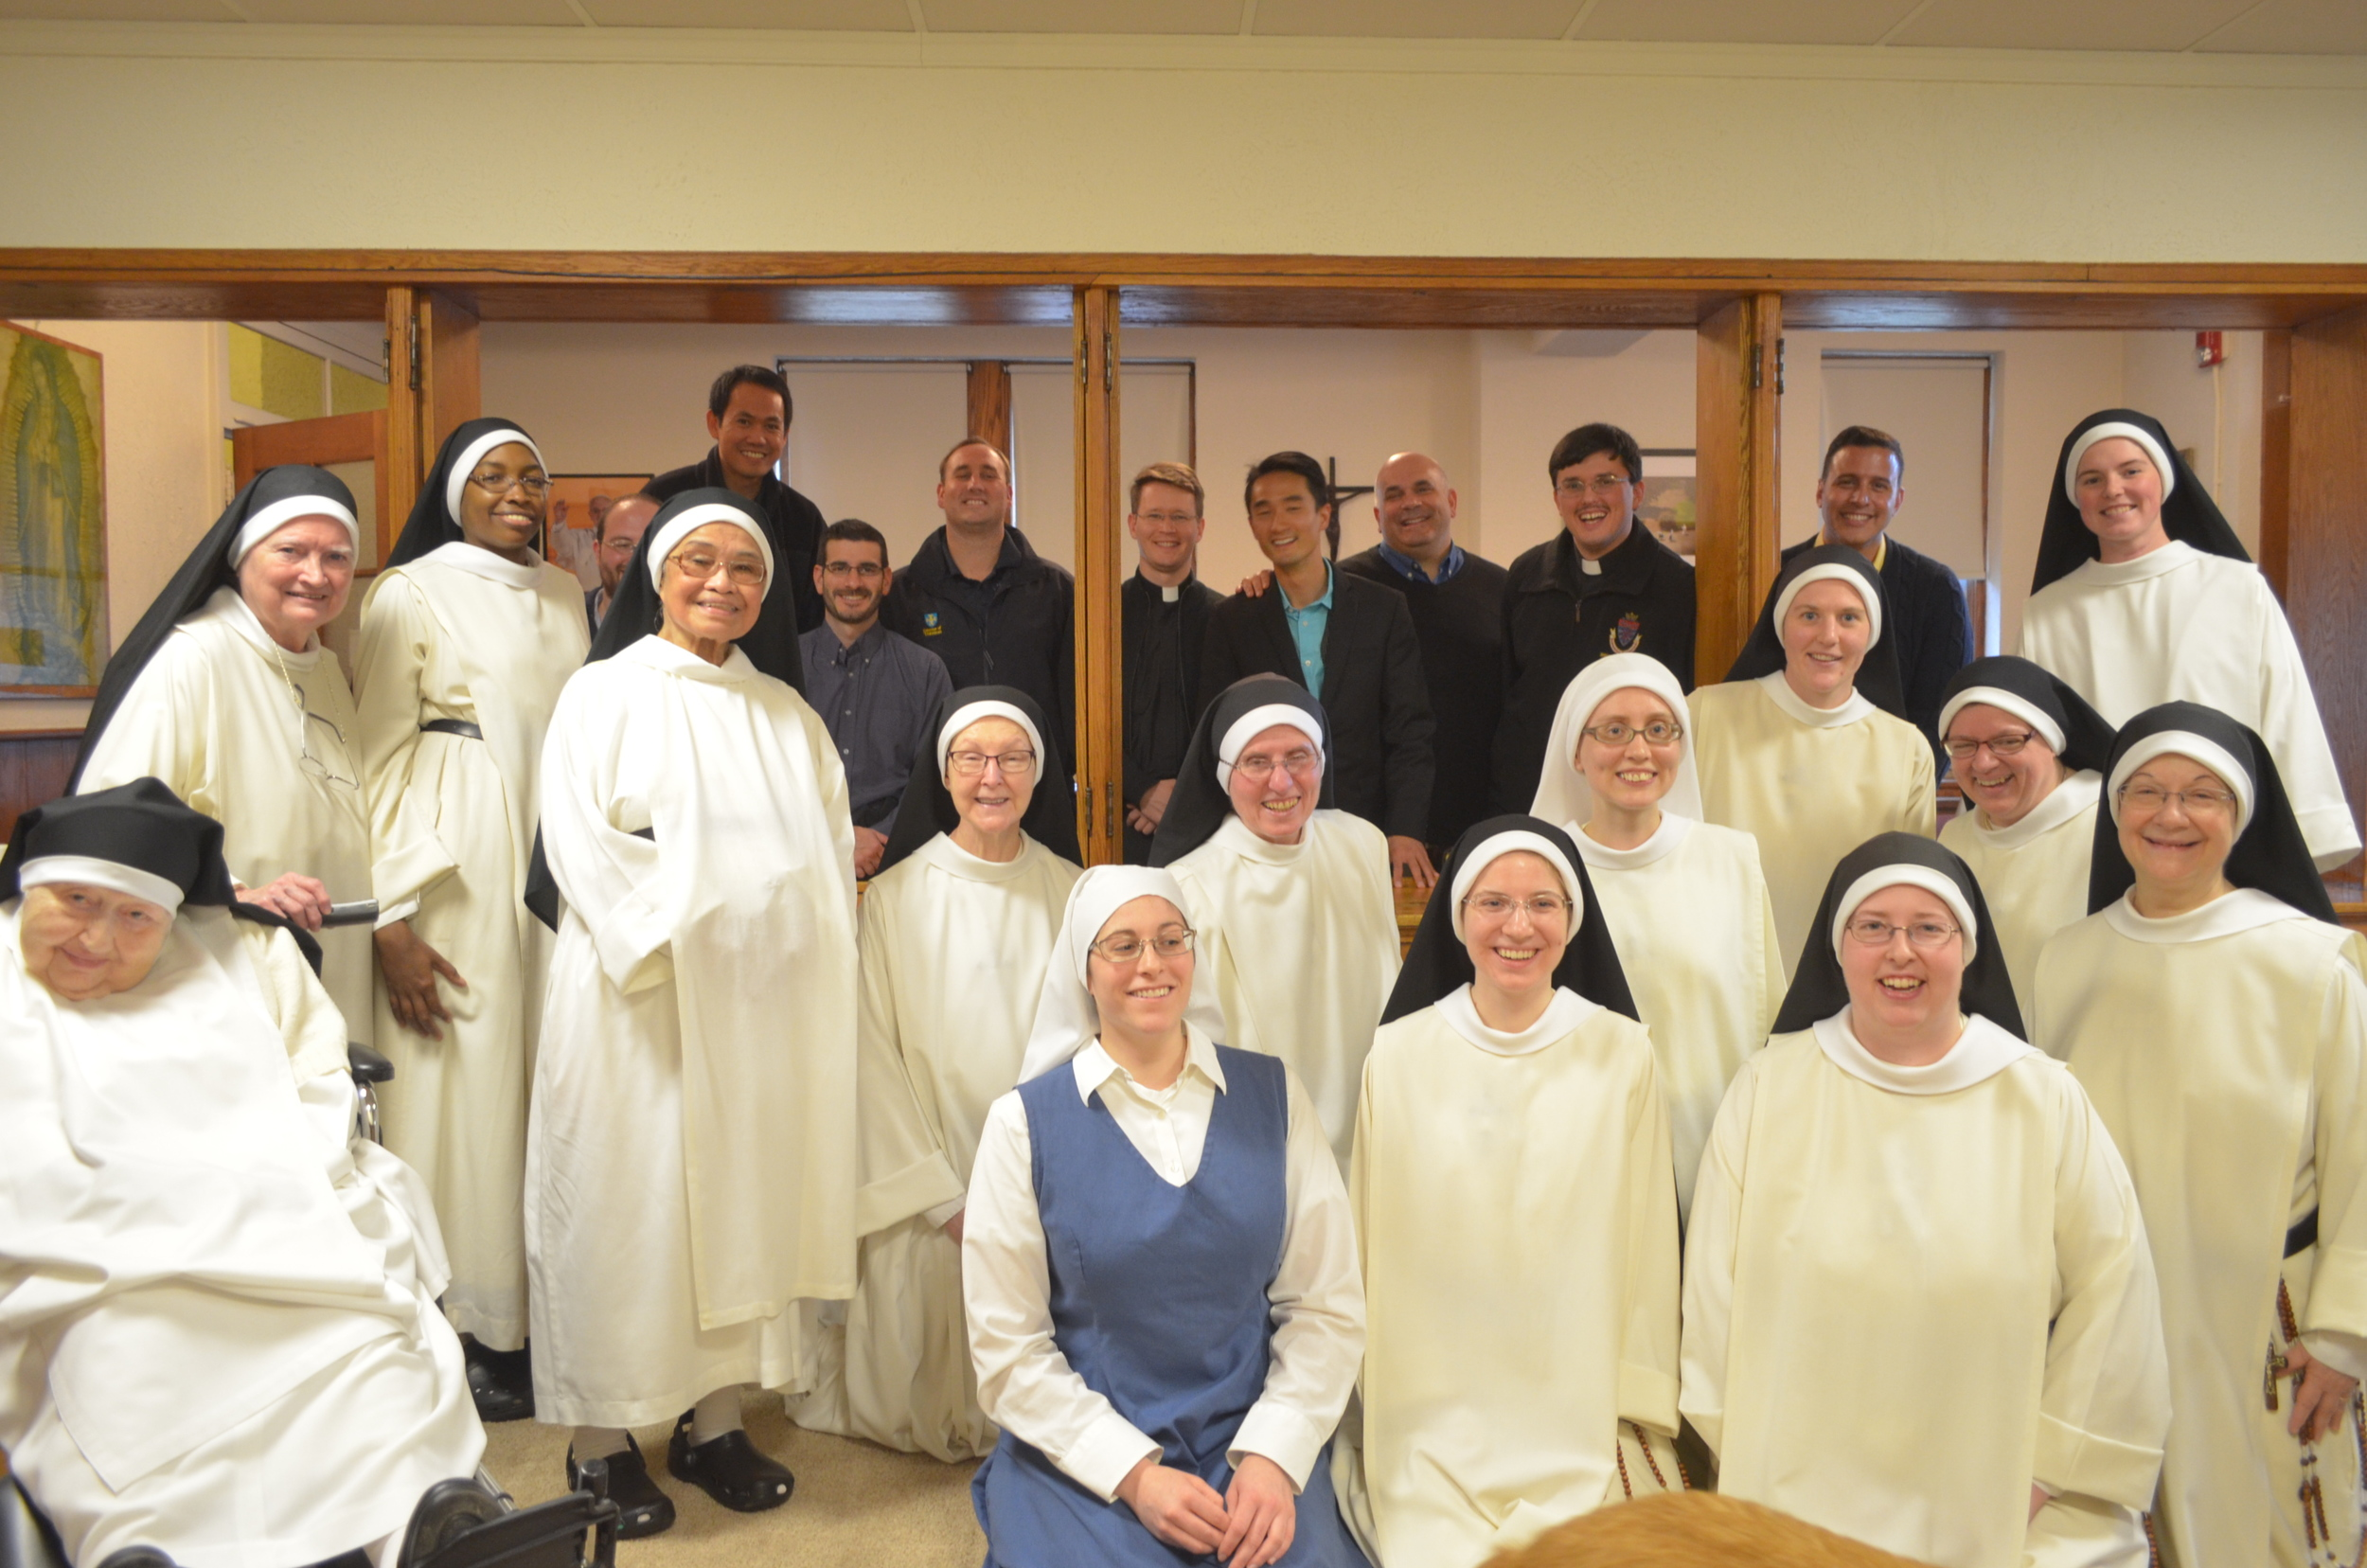 Group picture before Vespers. We  almost fit everyone!